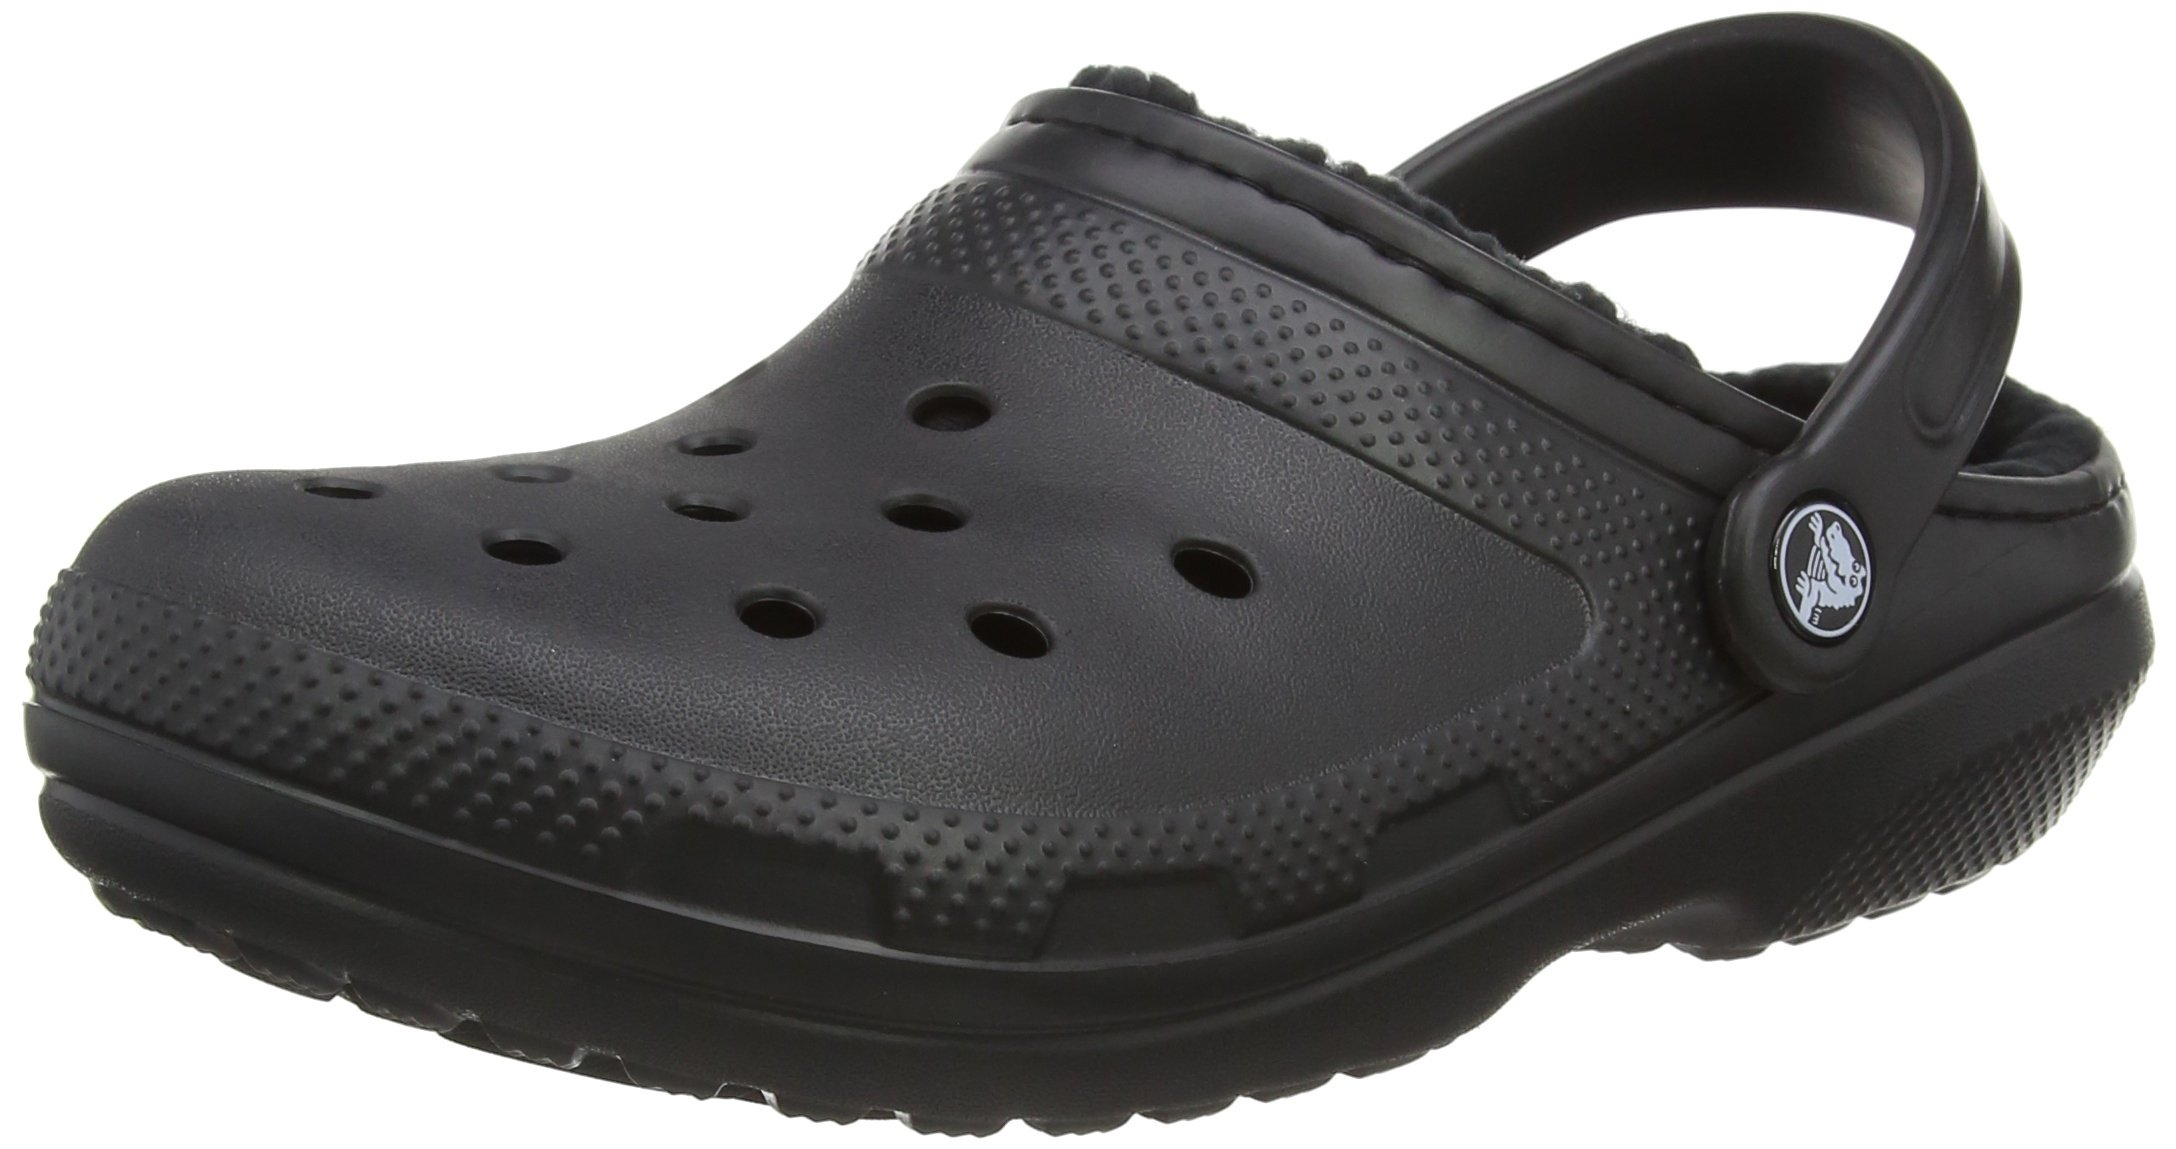 Crocs Unisex Classic Lined Clog,Black/Black,10 US Men / 12 US Women by Crocs